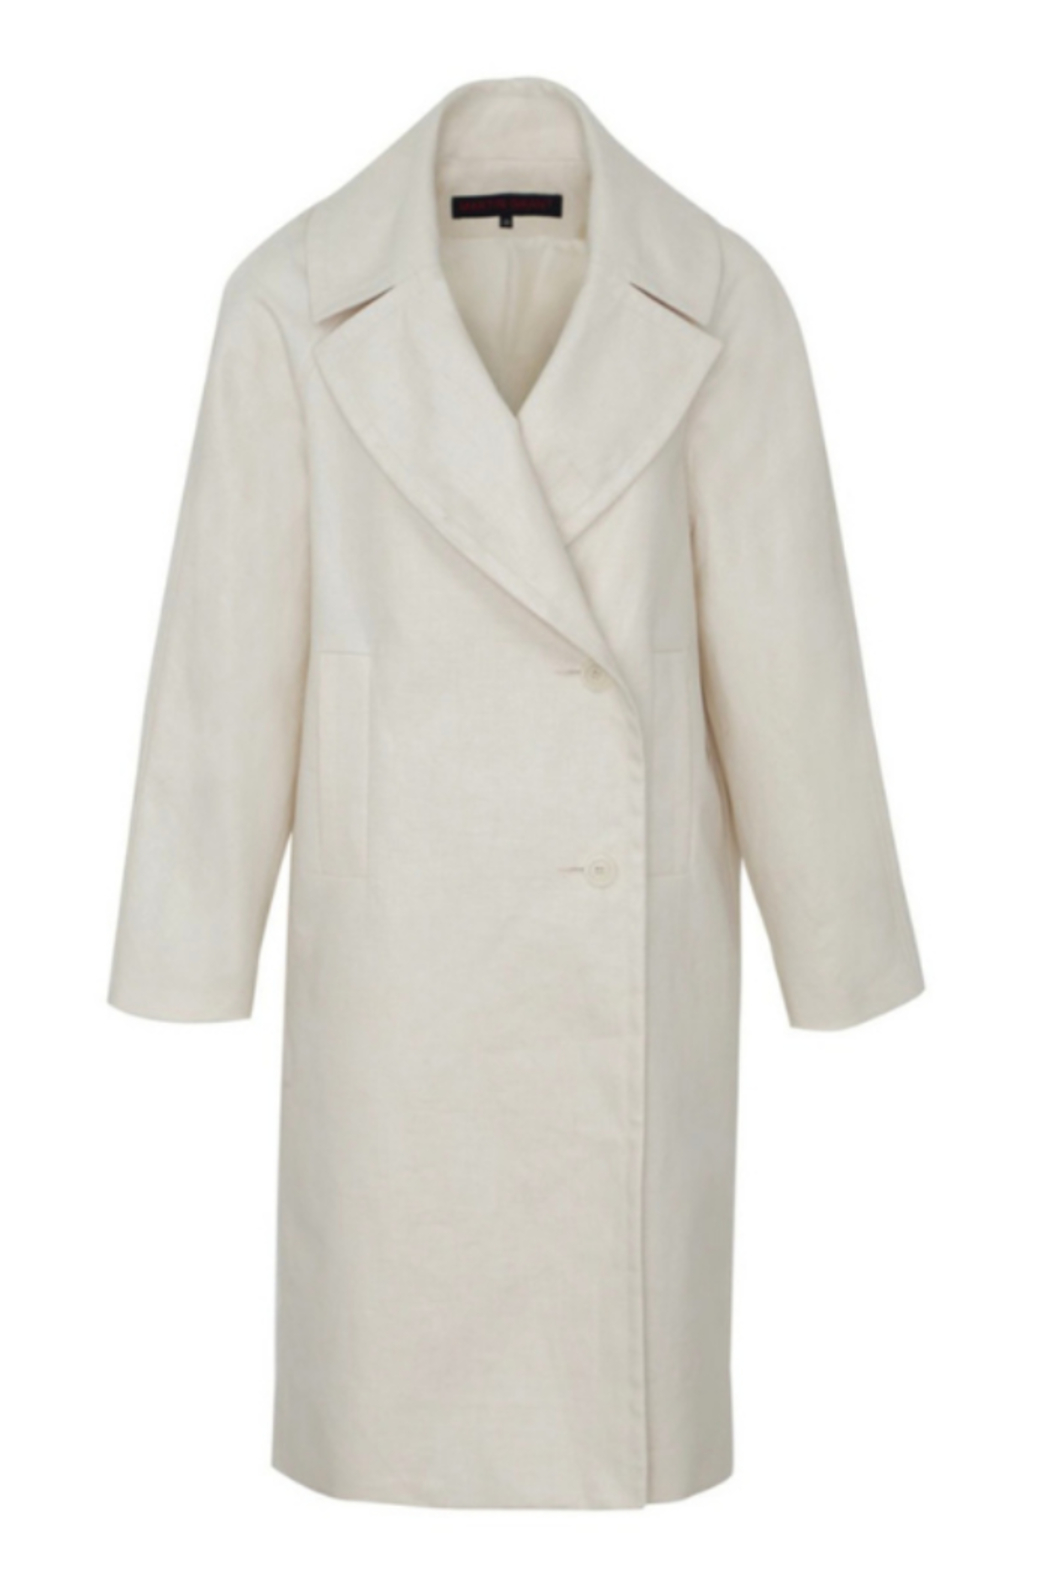 Martin Grant LINEN COCOON COAT - Side Cropped Image